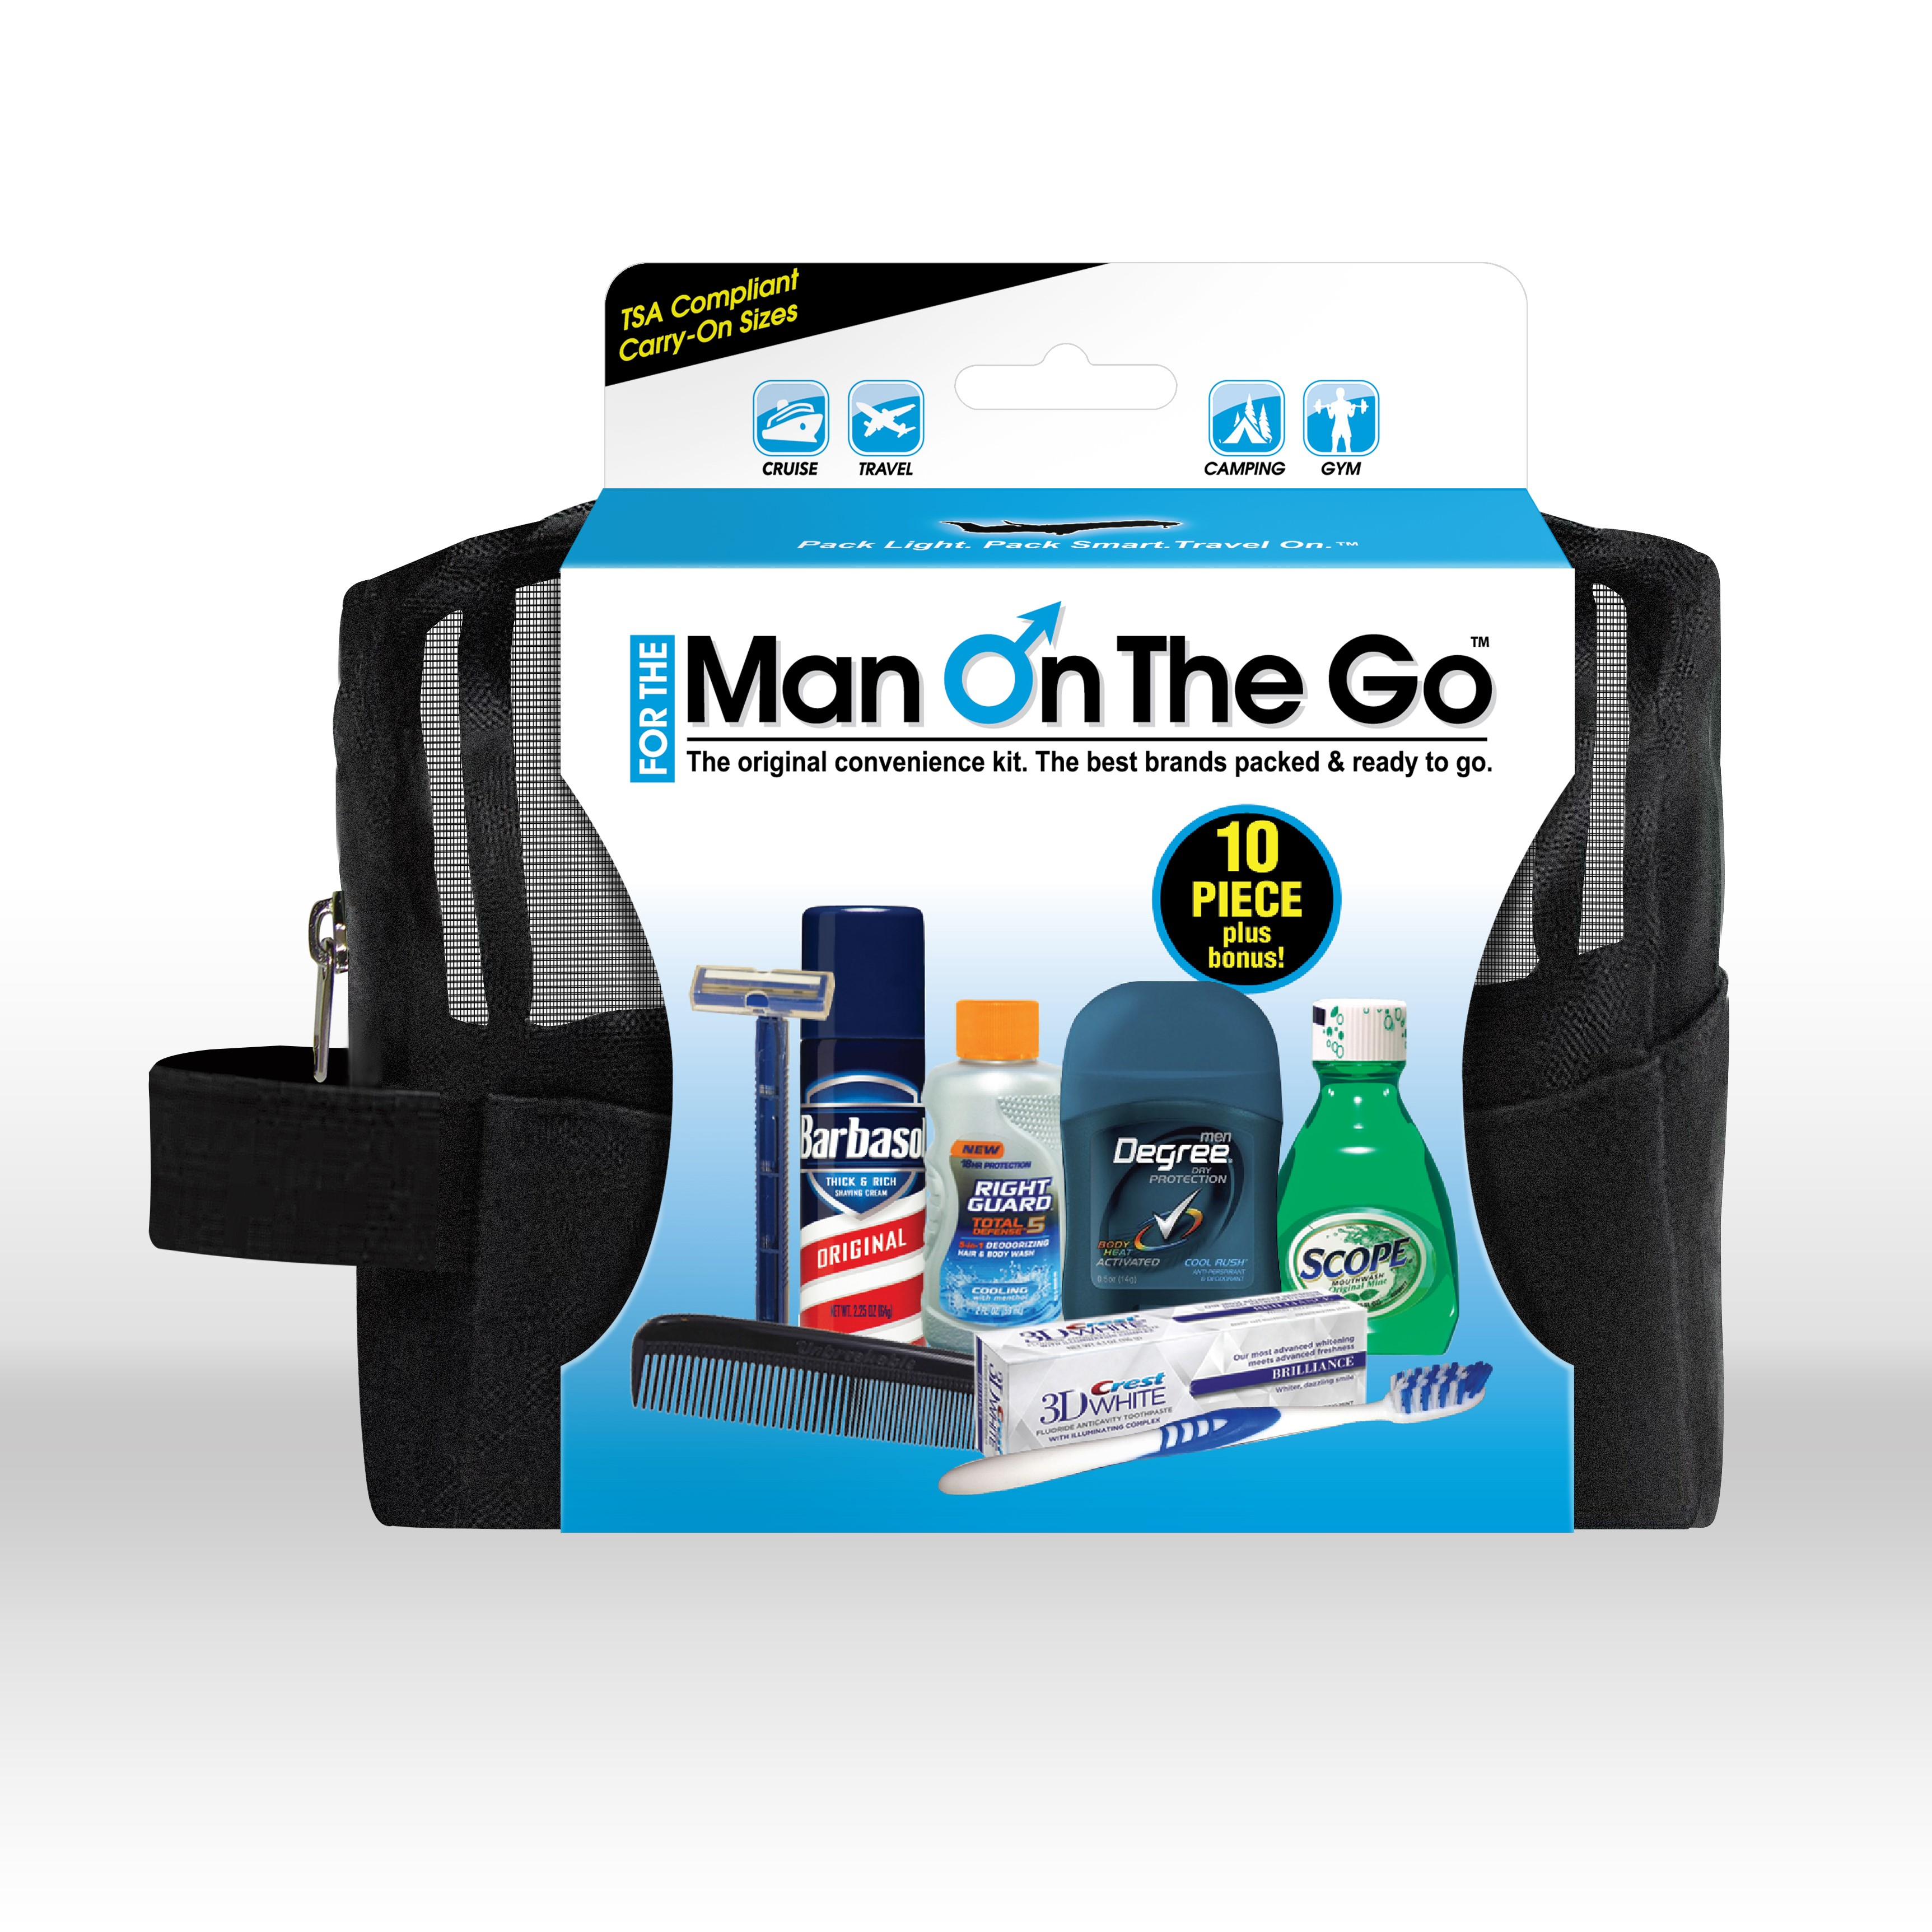 Man on the Go 10 pc Premium Travel Kit with Barbasol Shave ...